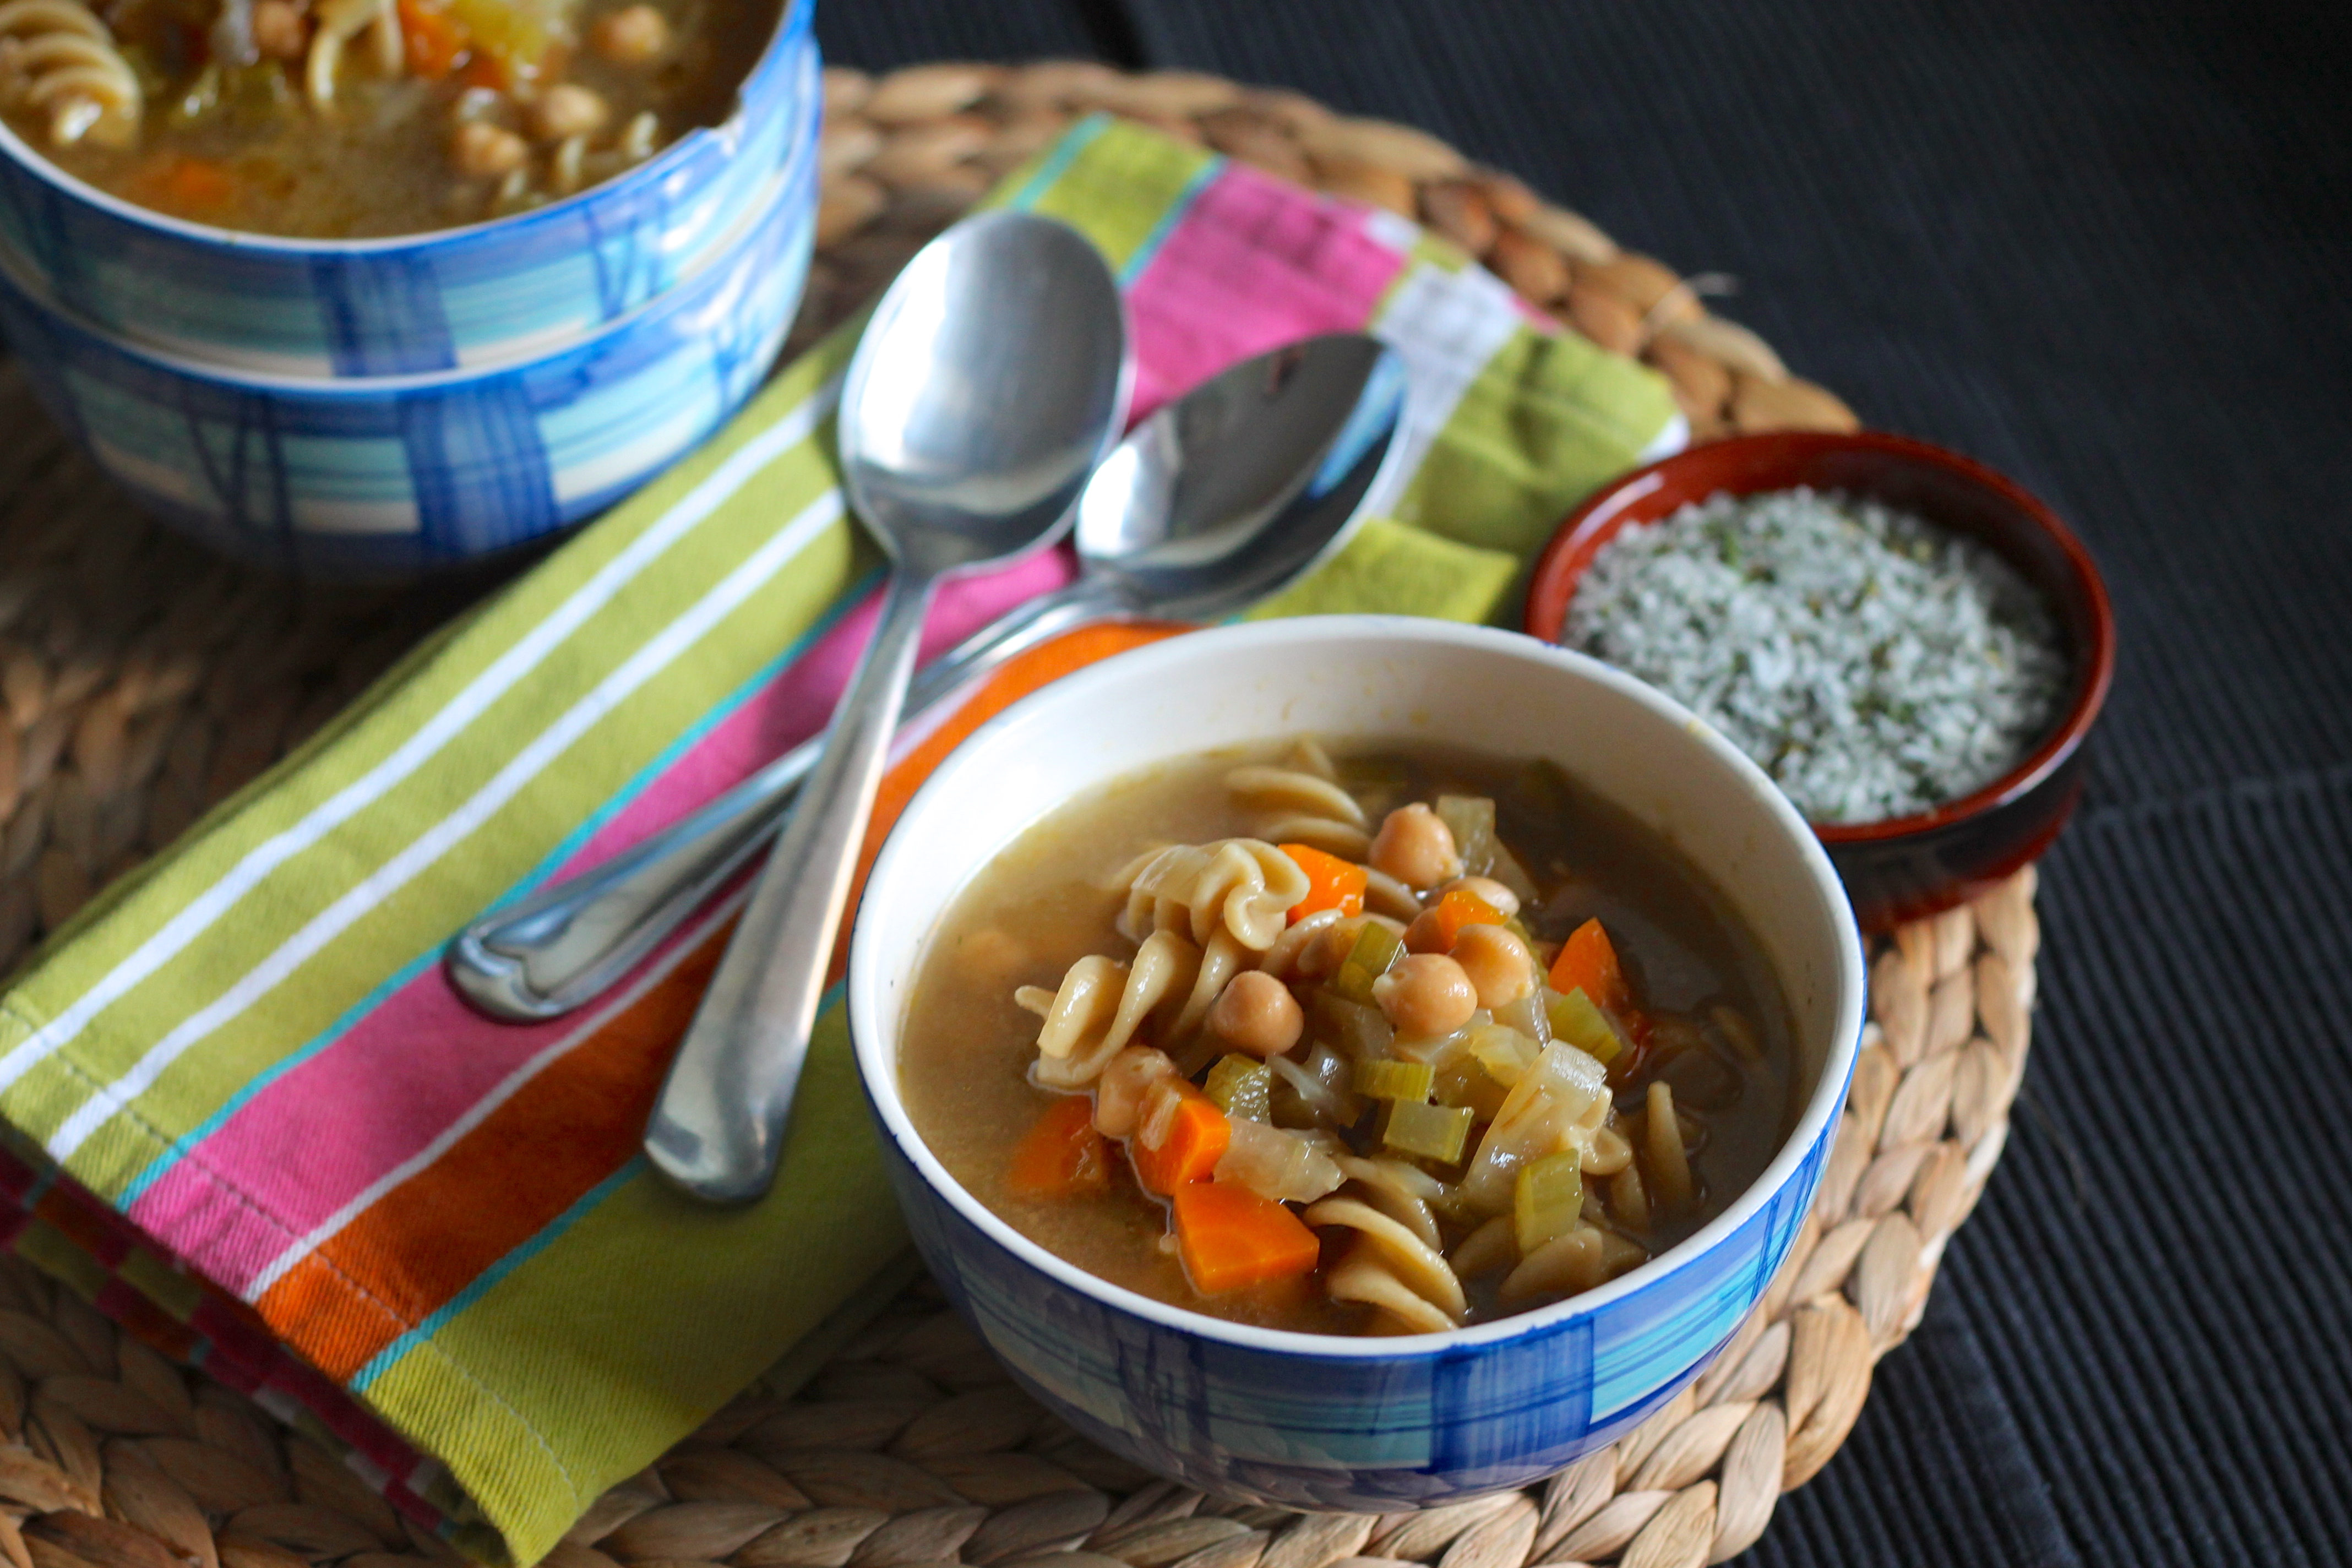 Hearty and nutritious vegetarian chickpea noodle soup